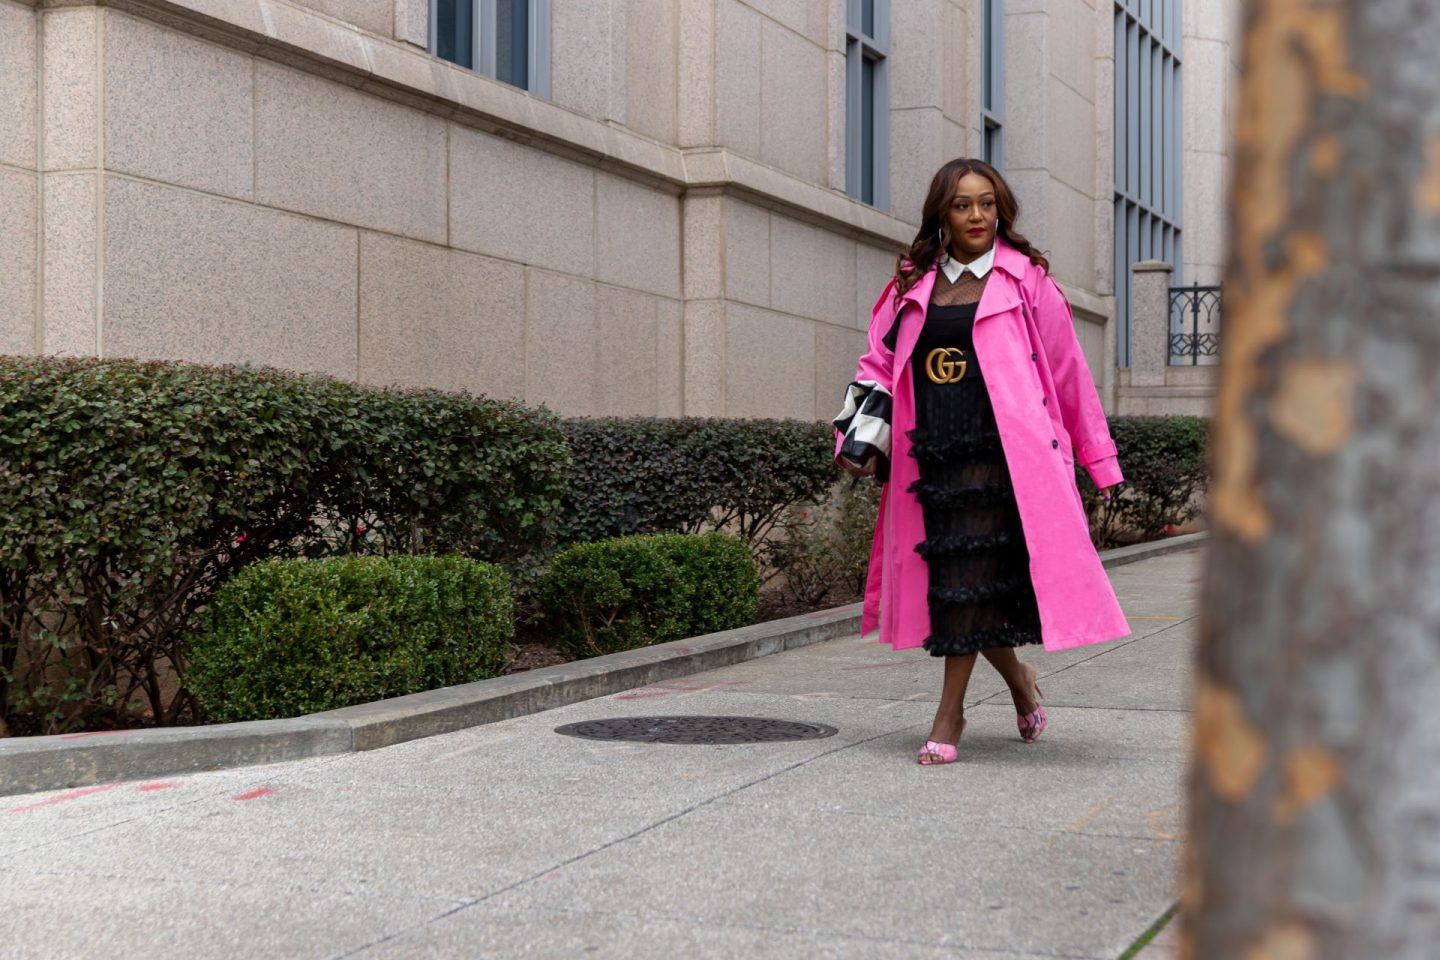 Influencer Nikki Free walking on sidewalk wearing a pink trench coat